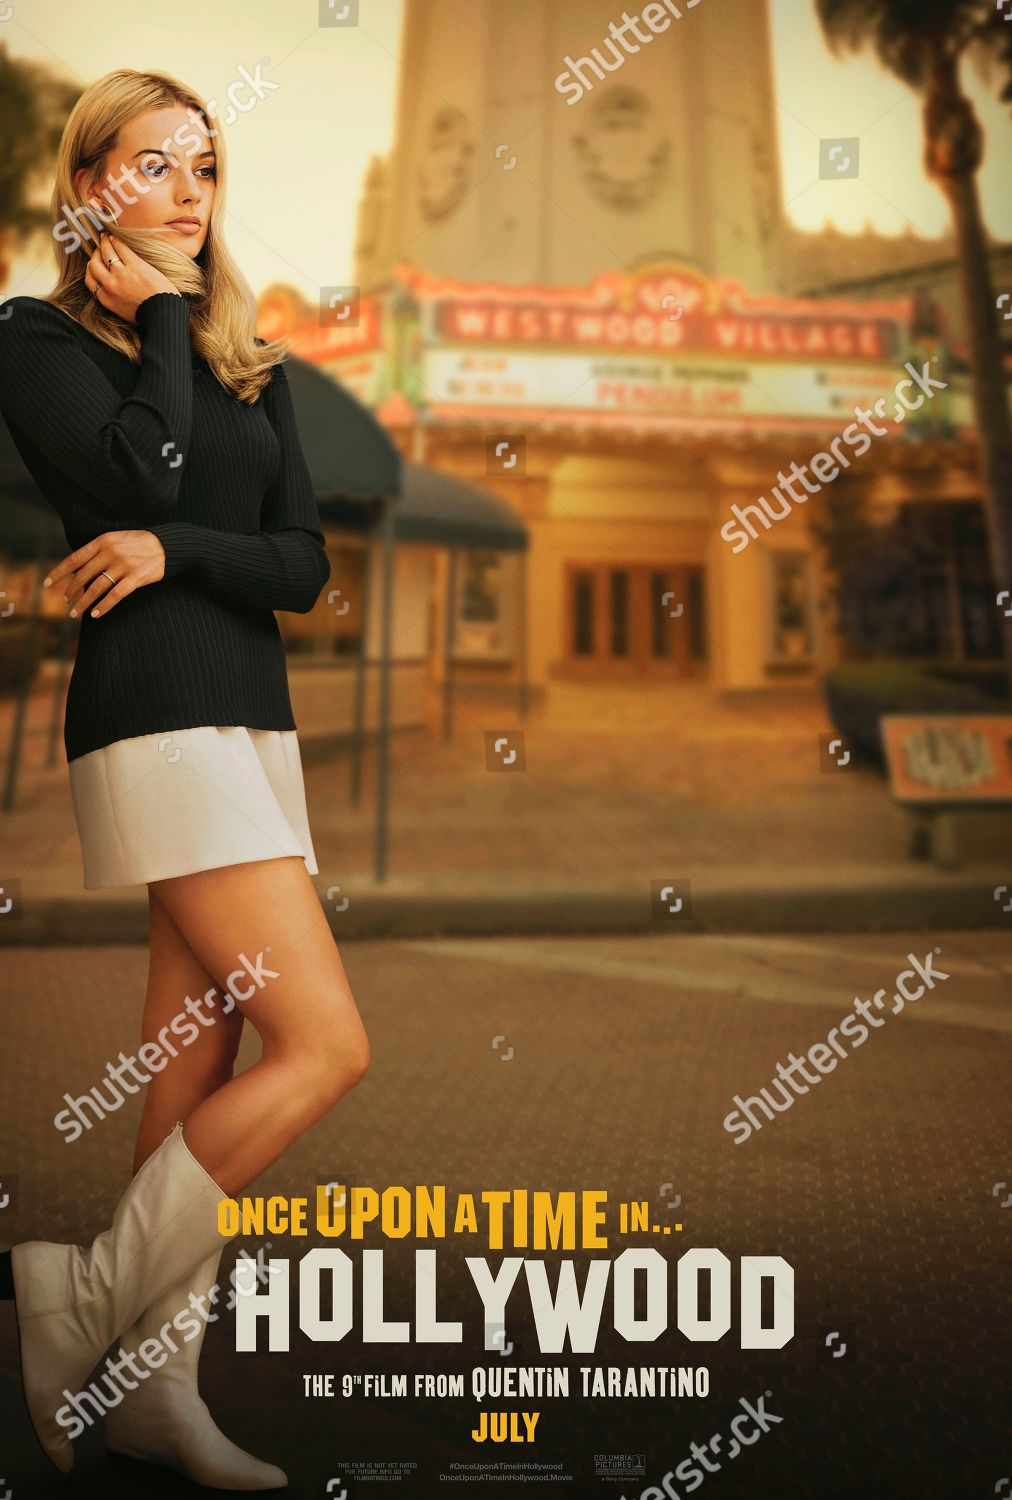 Once Upon Time Hollywood 2019 Poster Art Editorial Stock Photo Stock Image Shutterstock